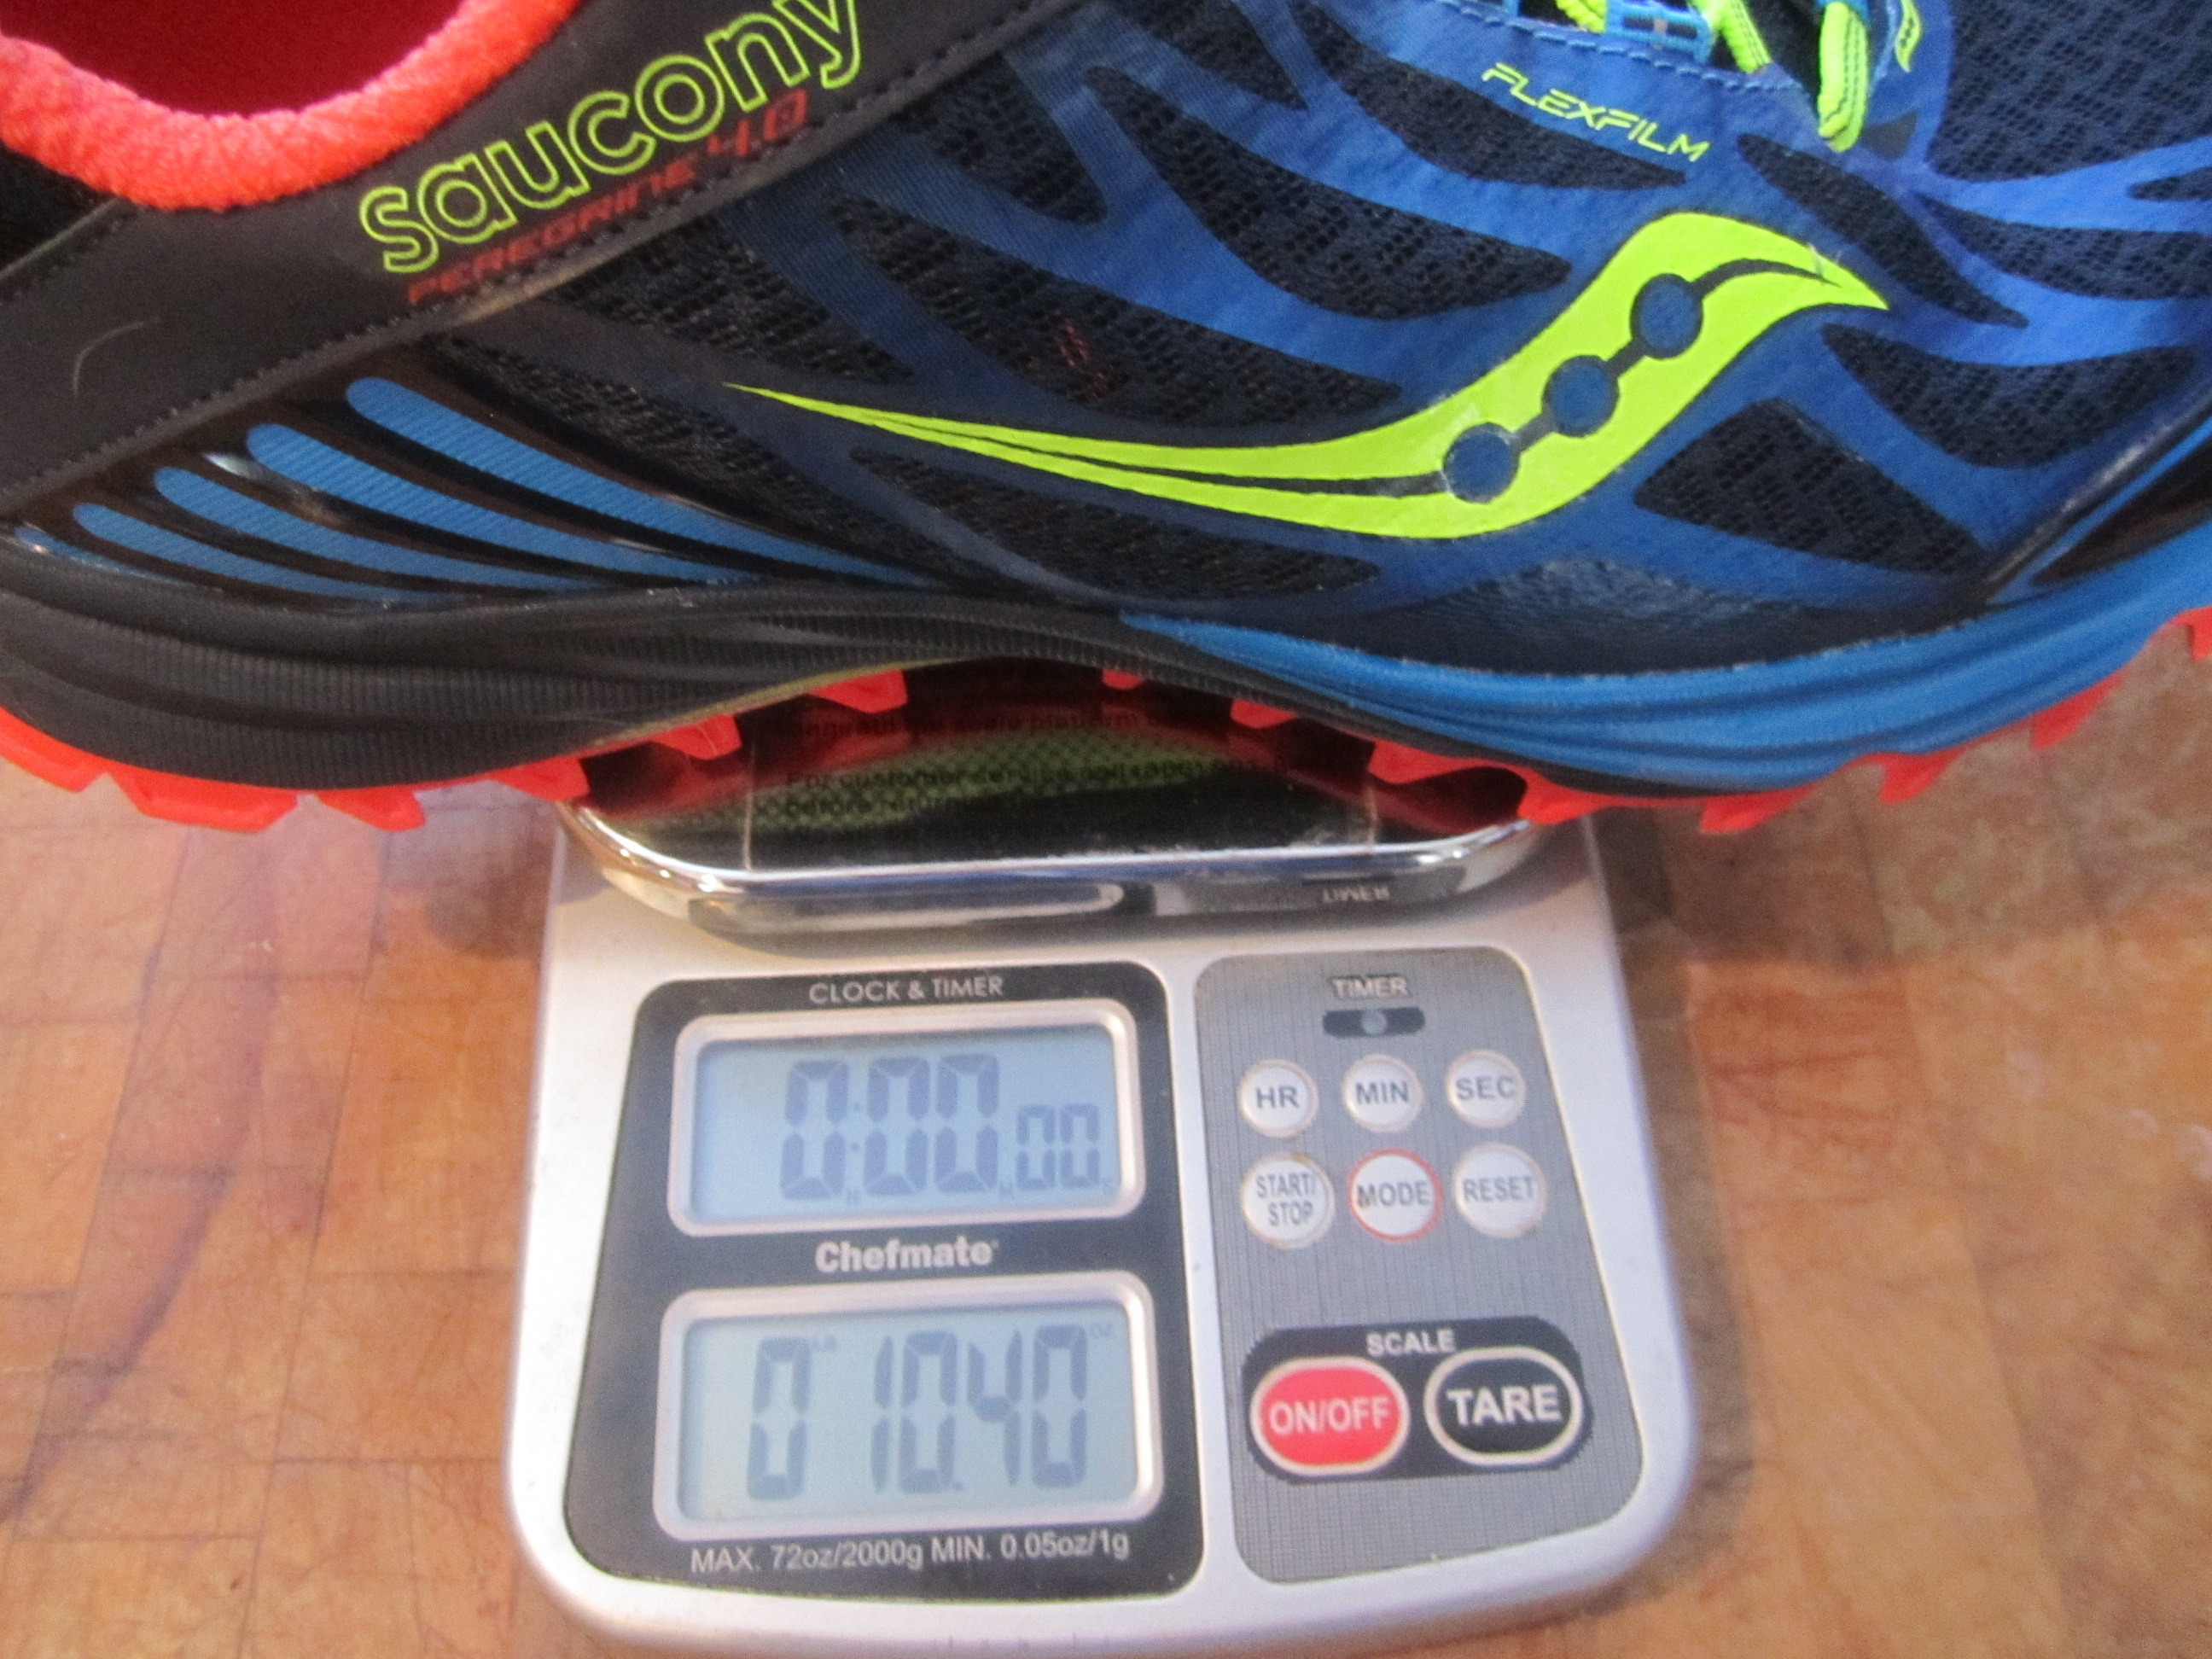 Saucony Powergrid Peregrine 4 Review